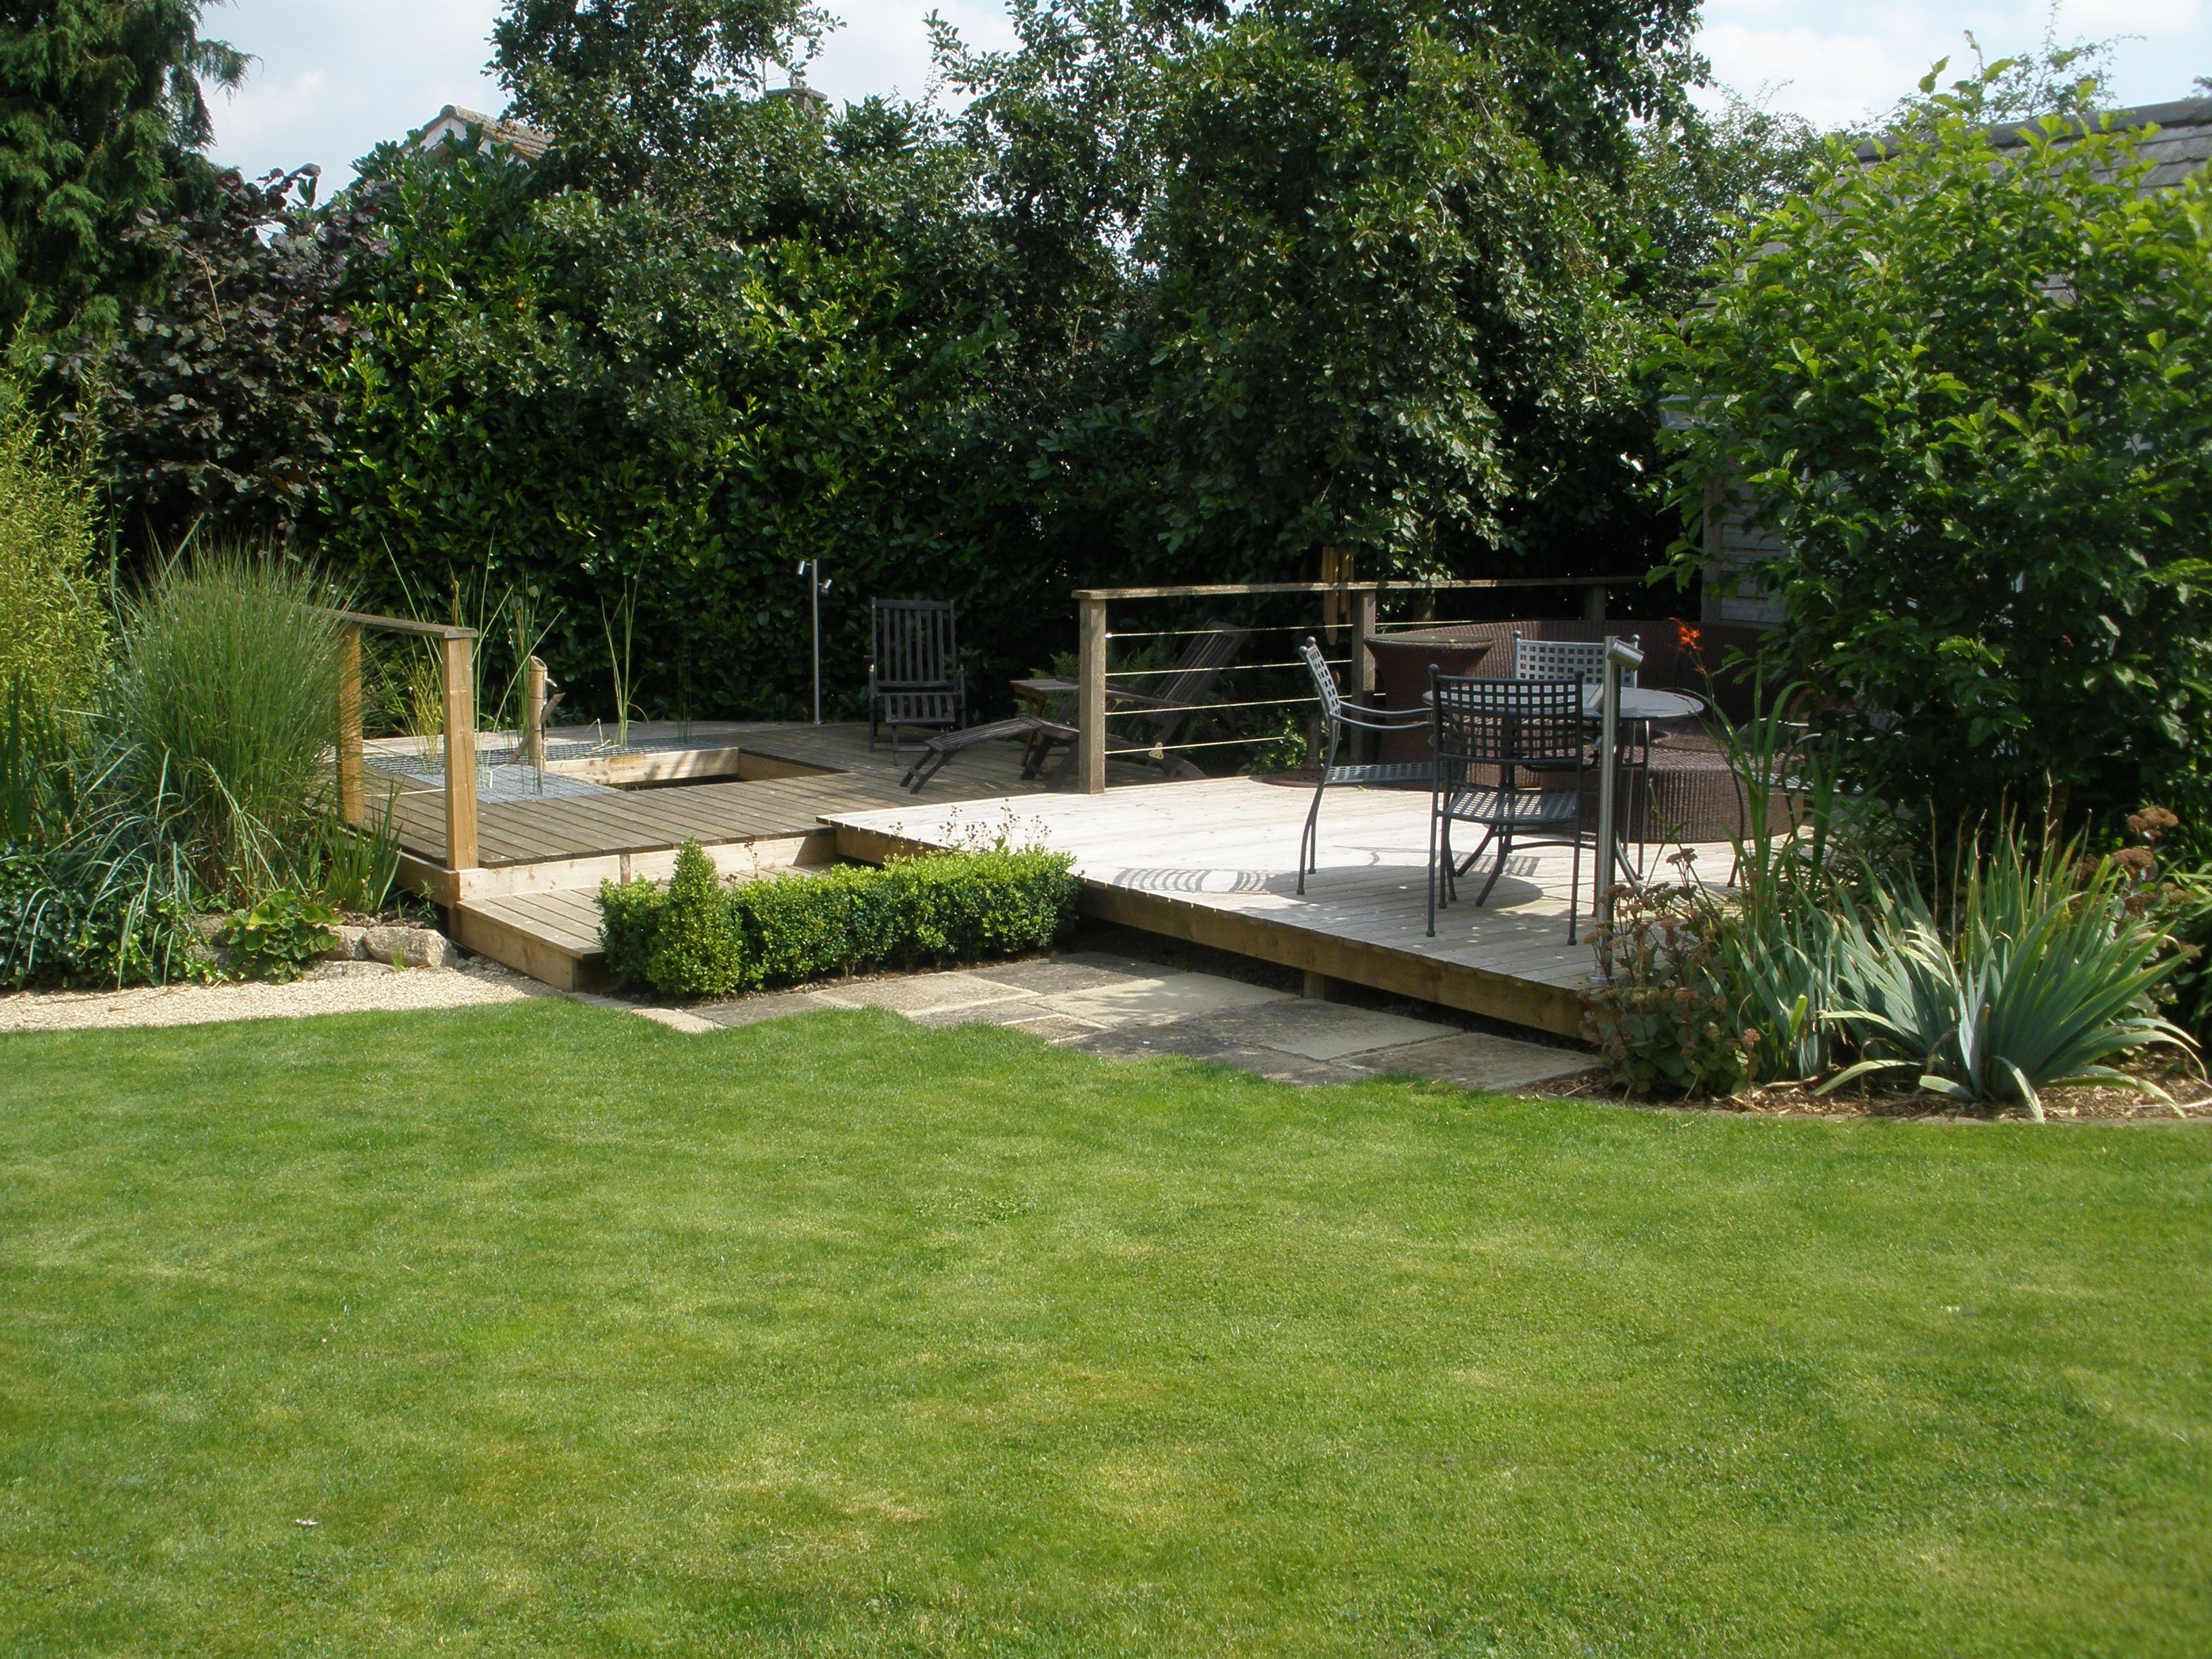 Gallery landscaping and agricultural services ltd tel for Garden design services